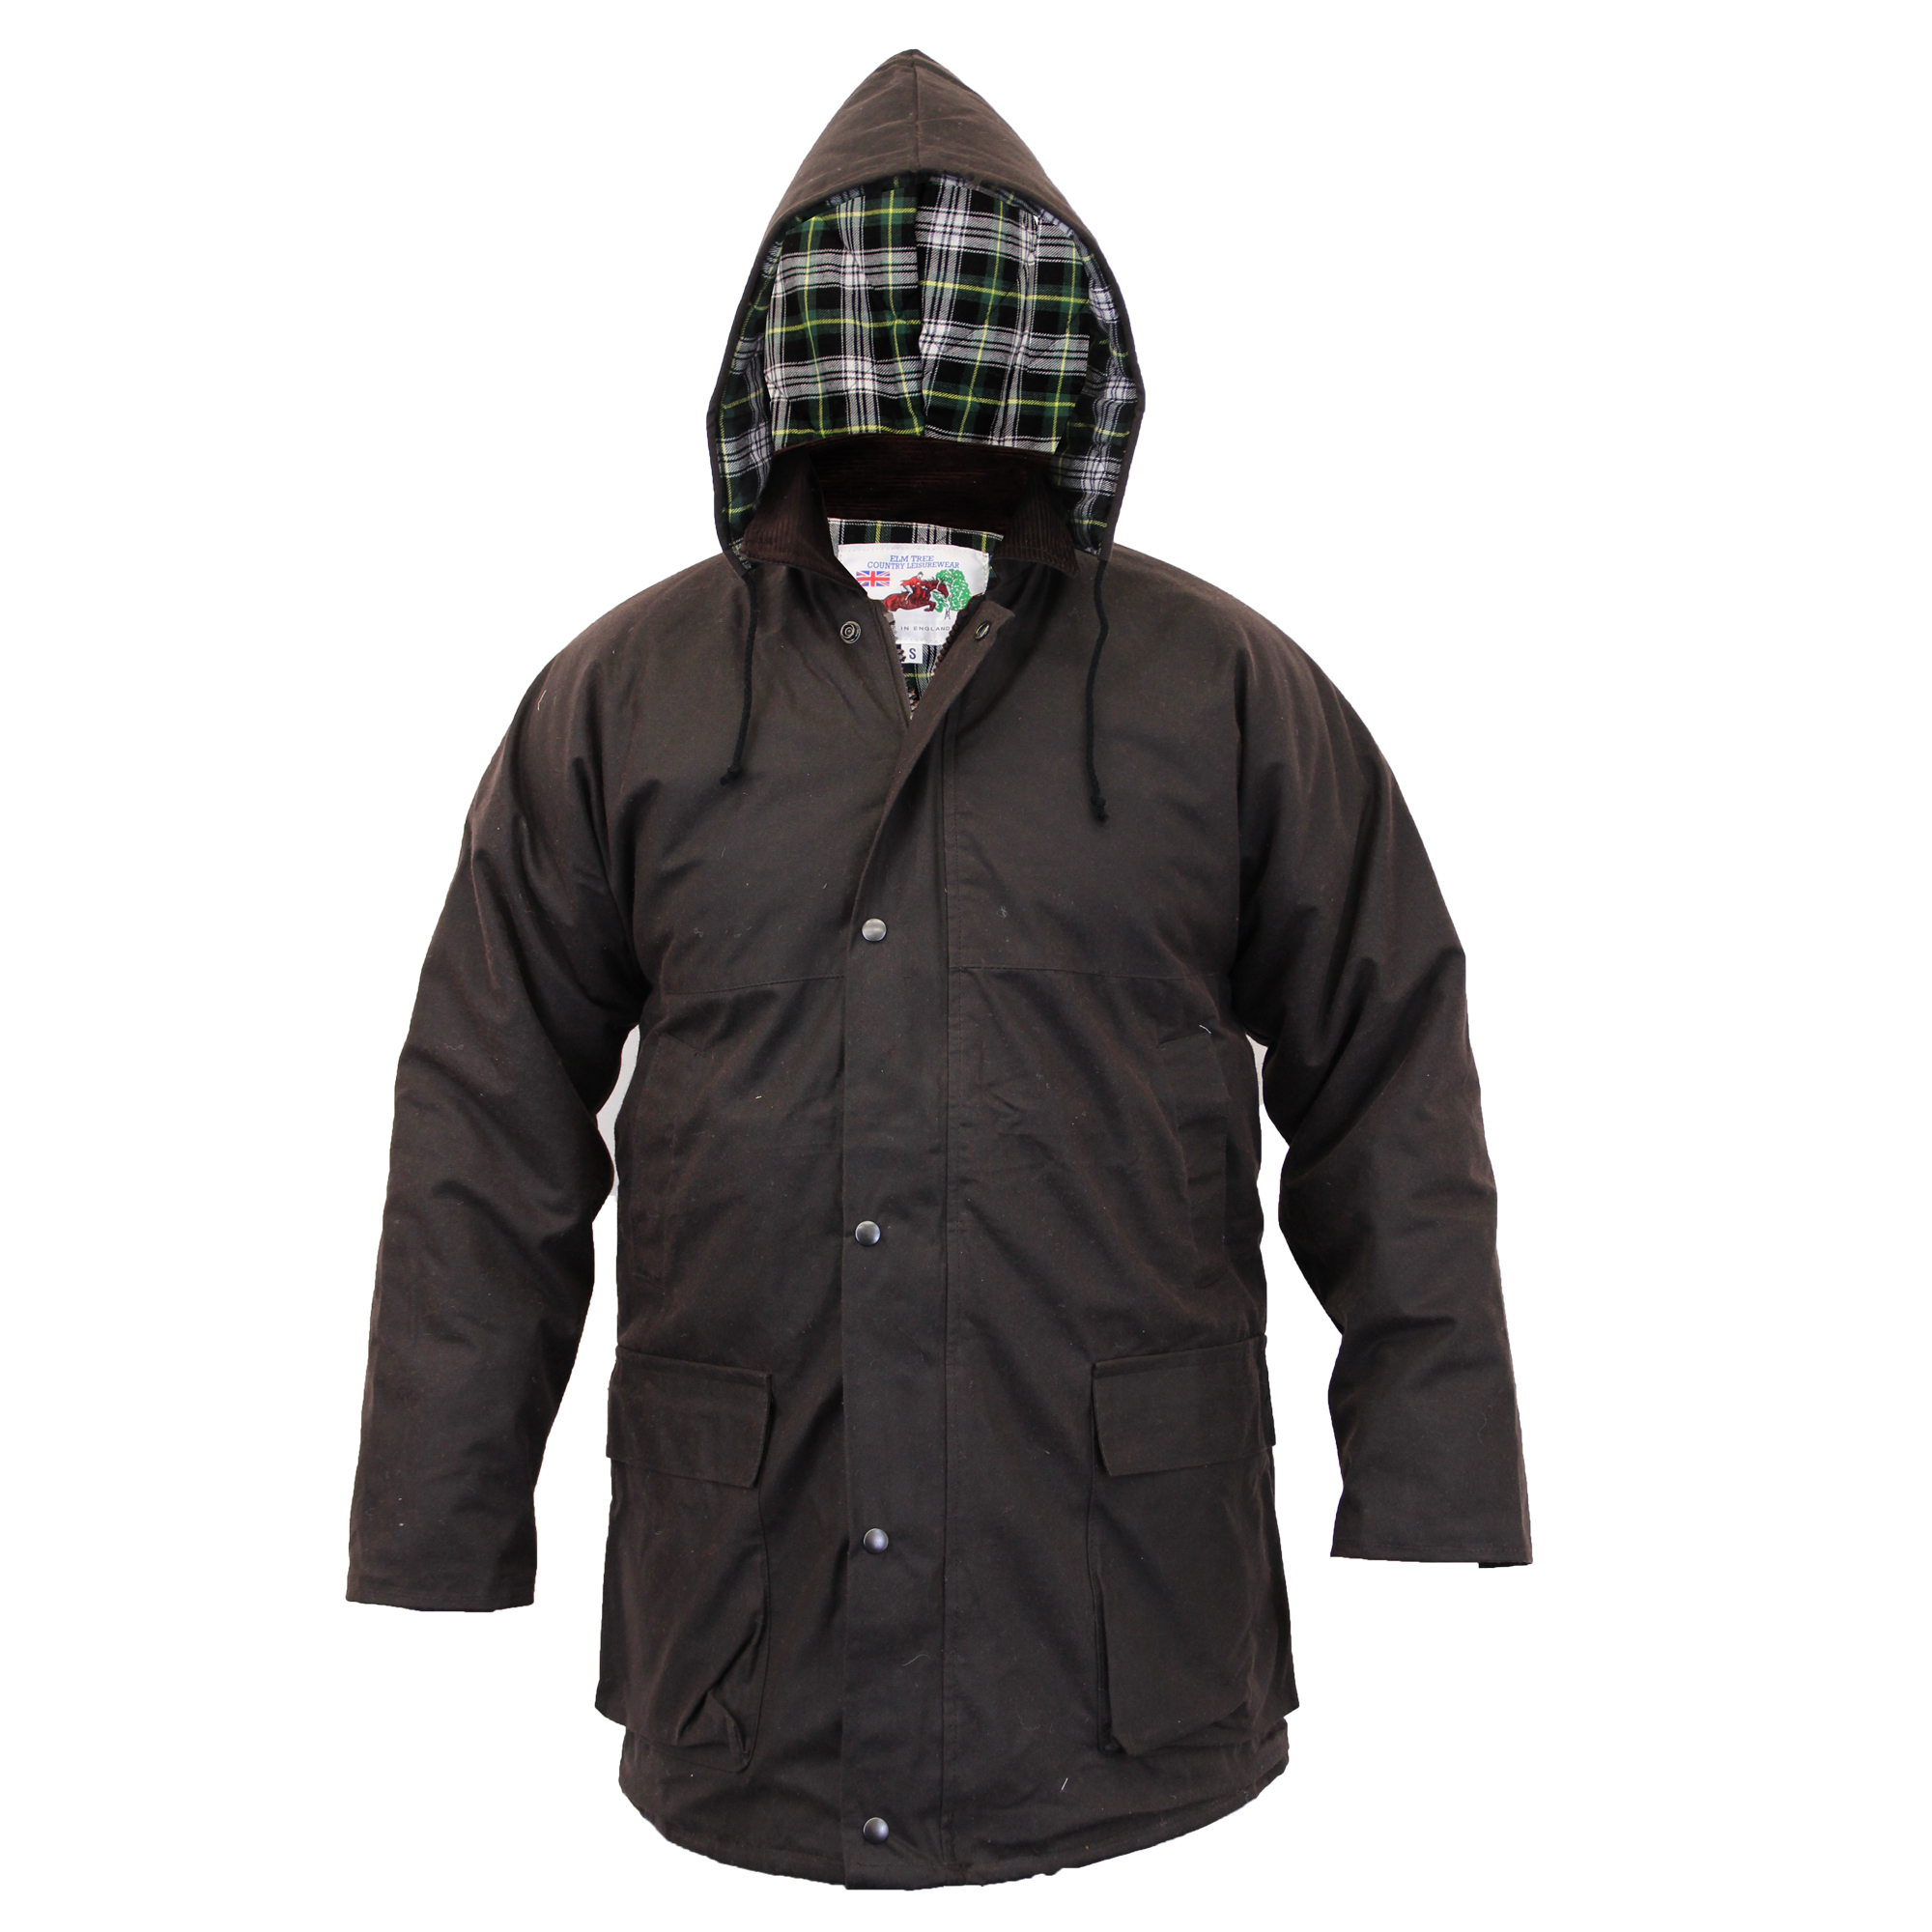 Brand new Checked Quilted wax jacket